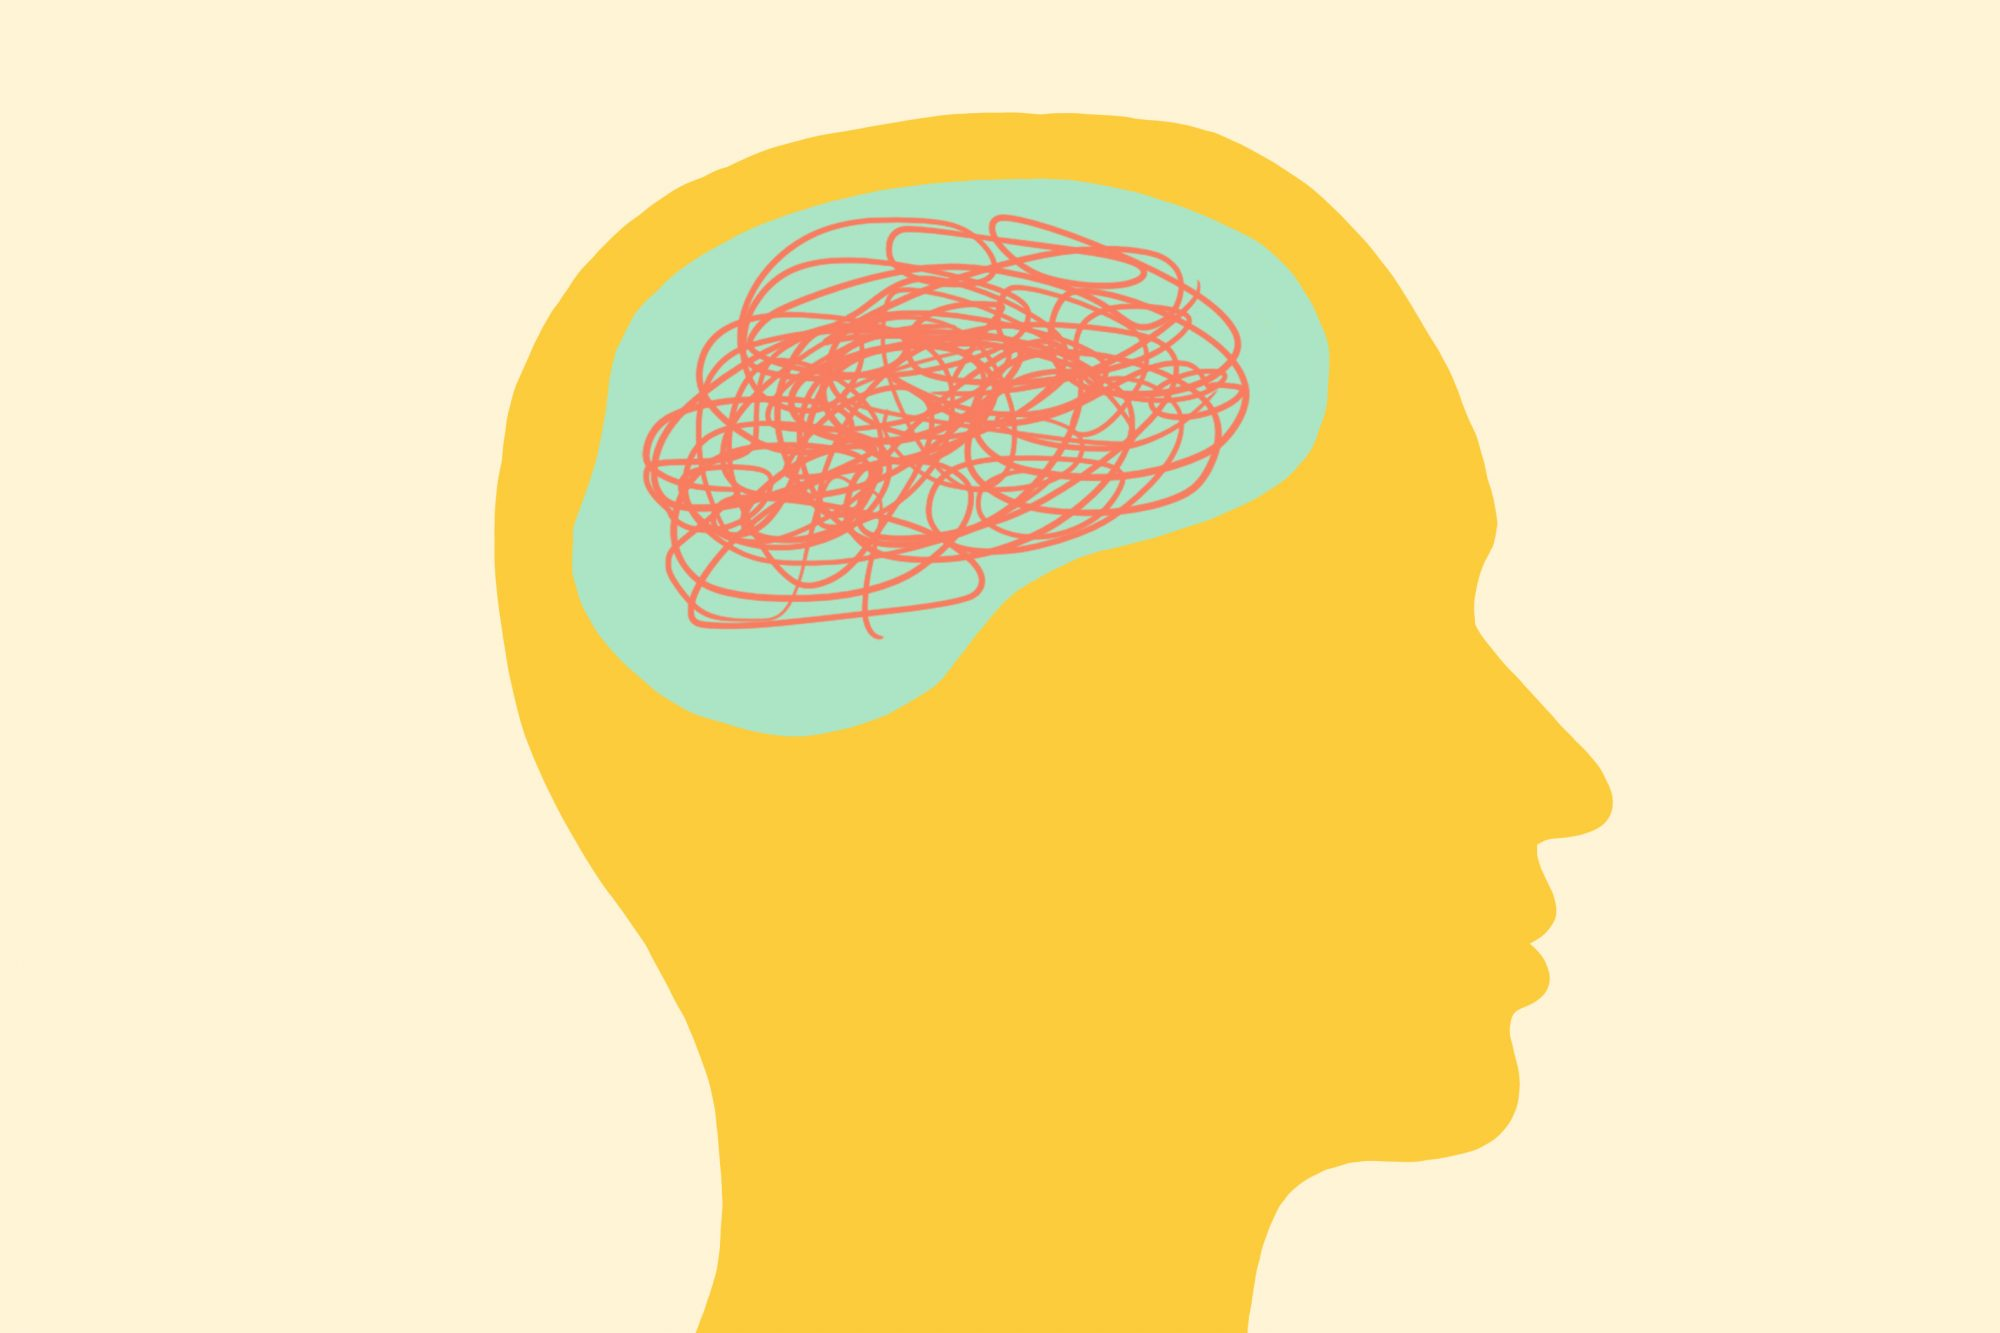 Mindfulness can strengthen your brain through neuroplasticity: silhouette in profile with brain illustration